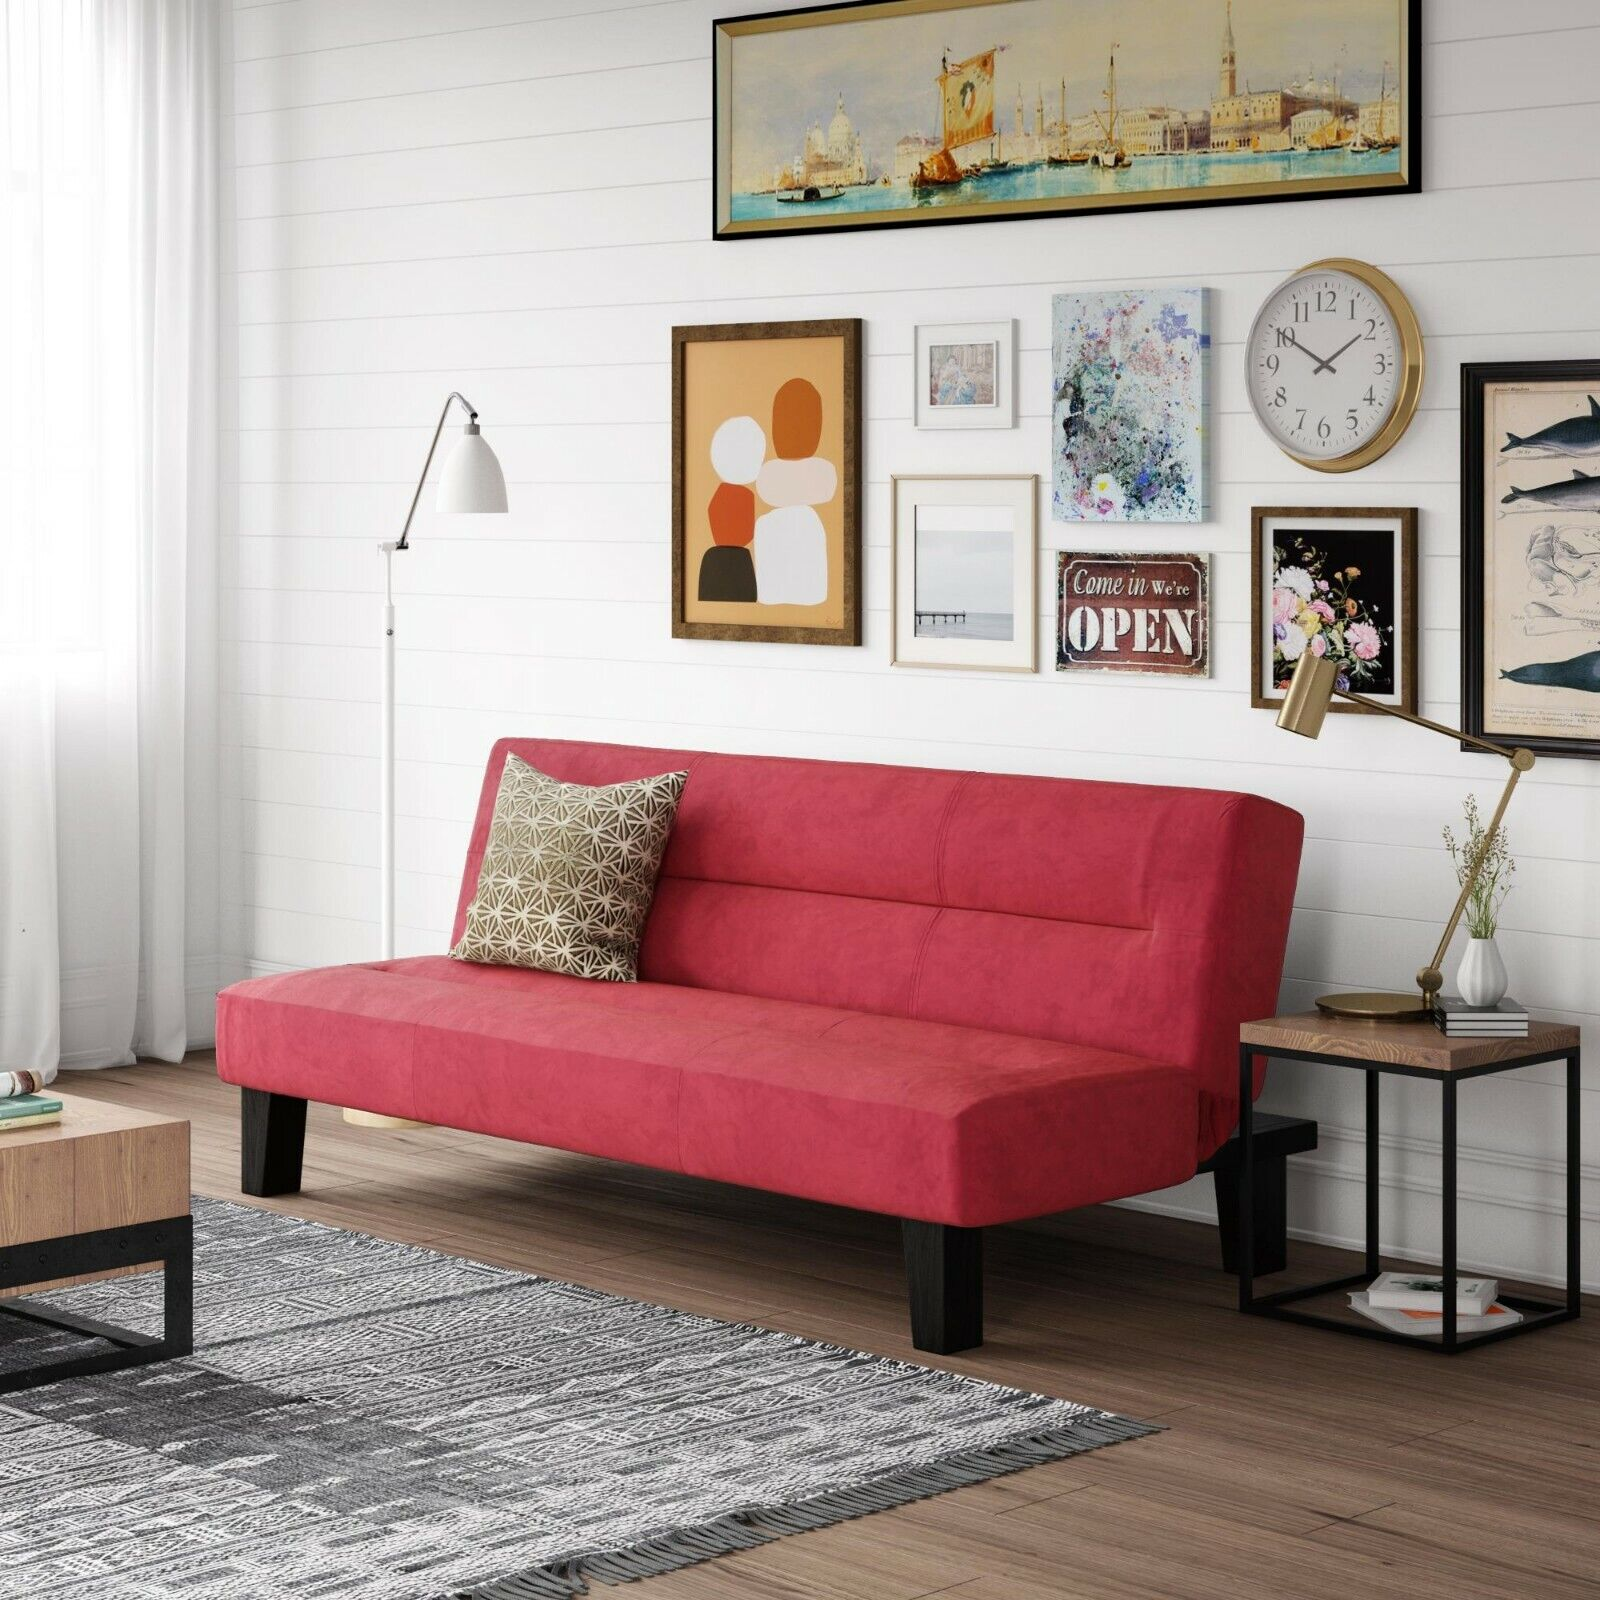 Convertible Red Sofa Couch Sleeper Guest Bed Minimalistic De